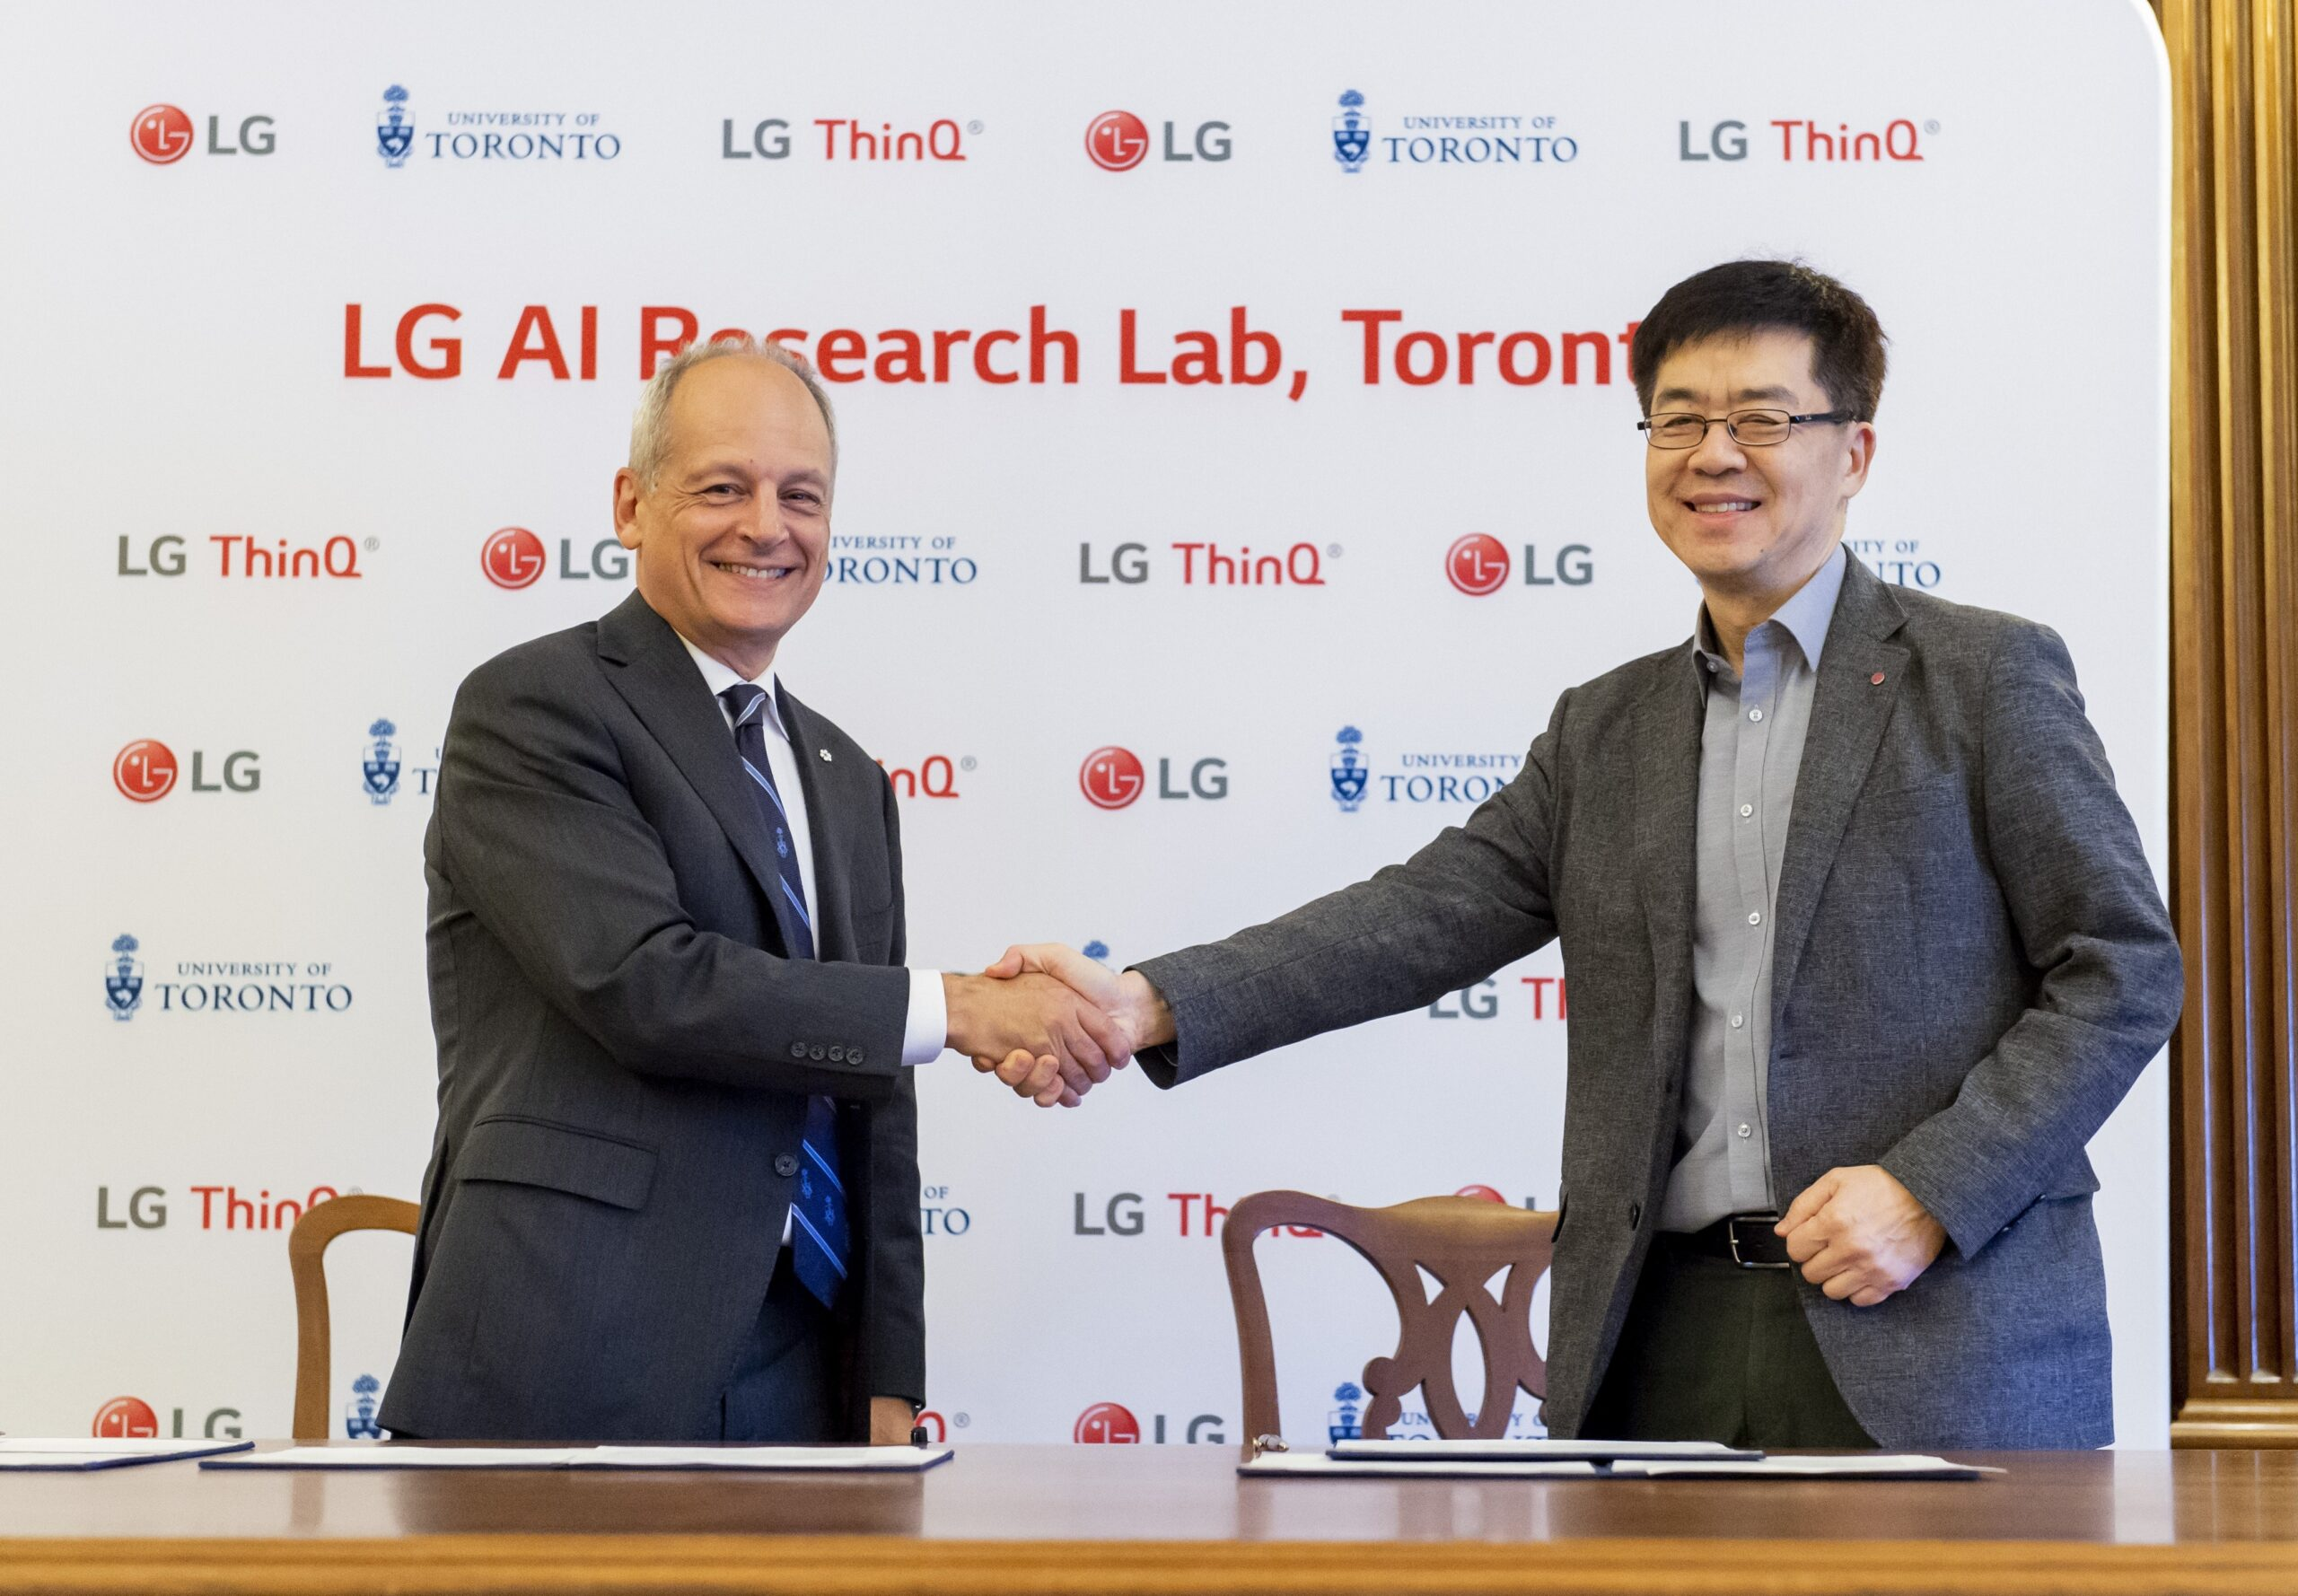 LG Electronics' president and chief technology officer, Dr. I.P. Park, shake hands with University of Toronto president, Meric Gertler.